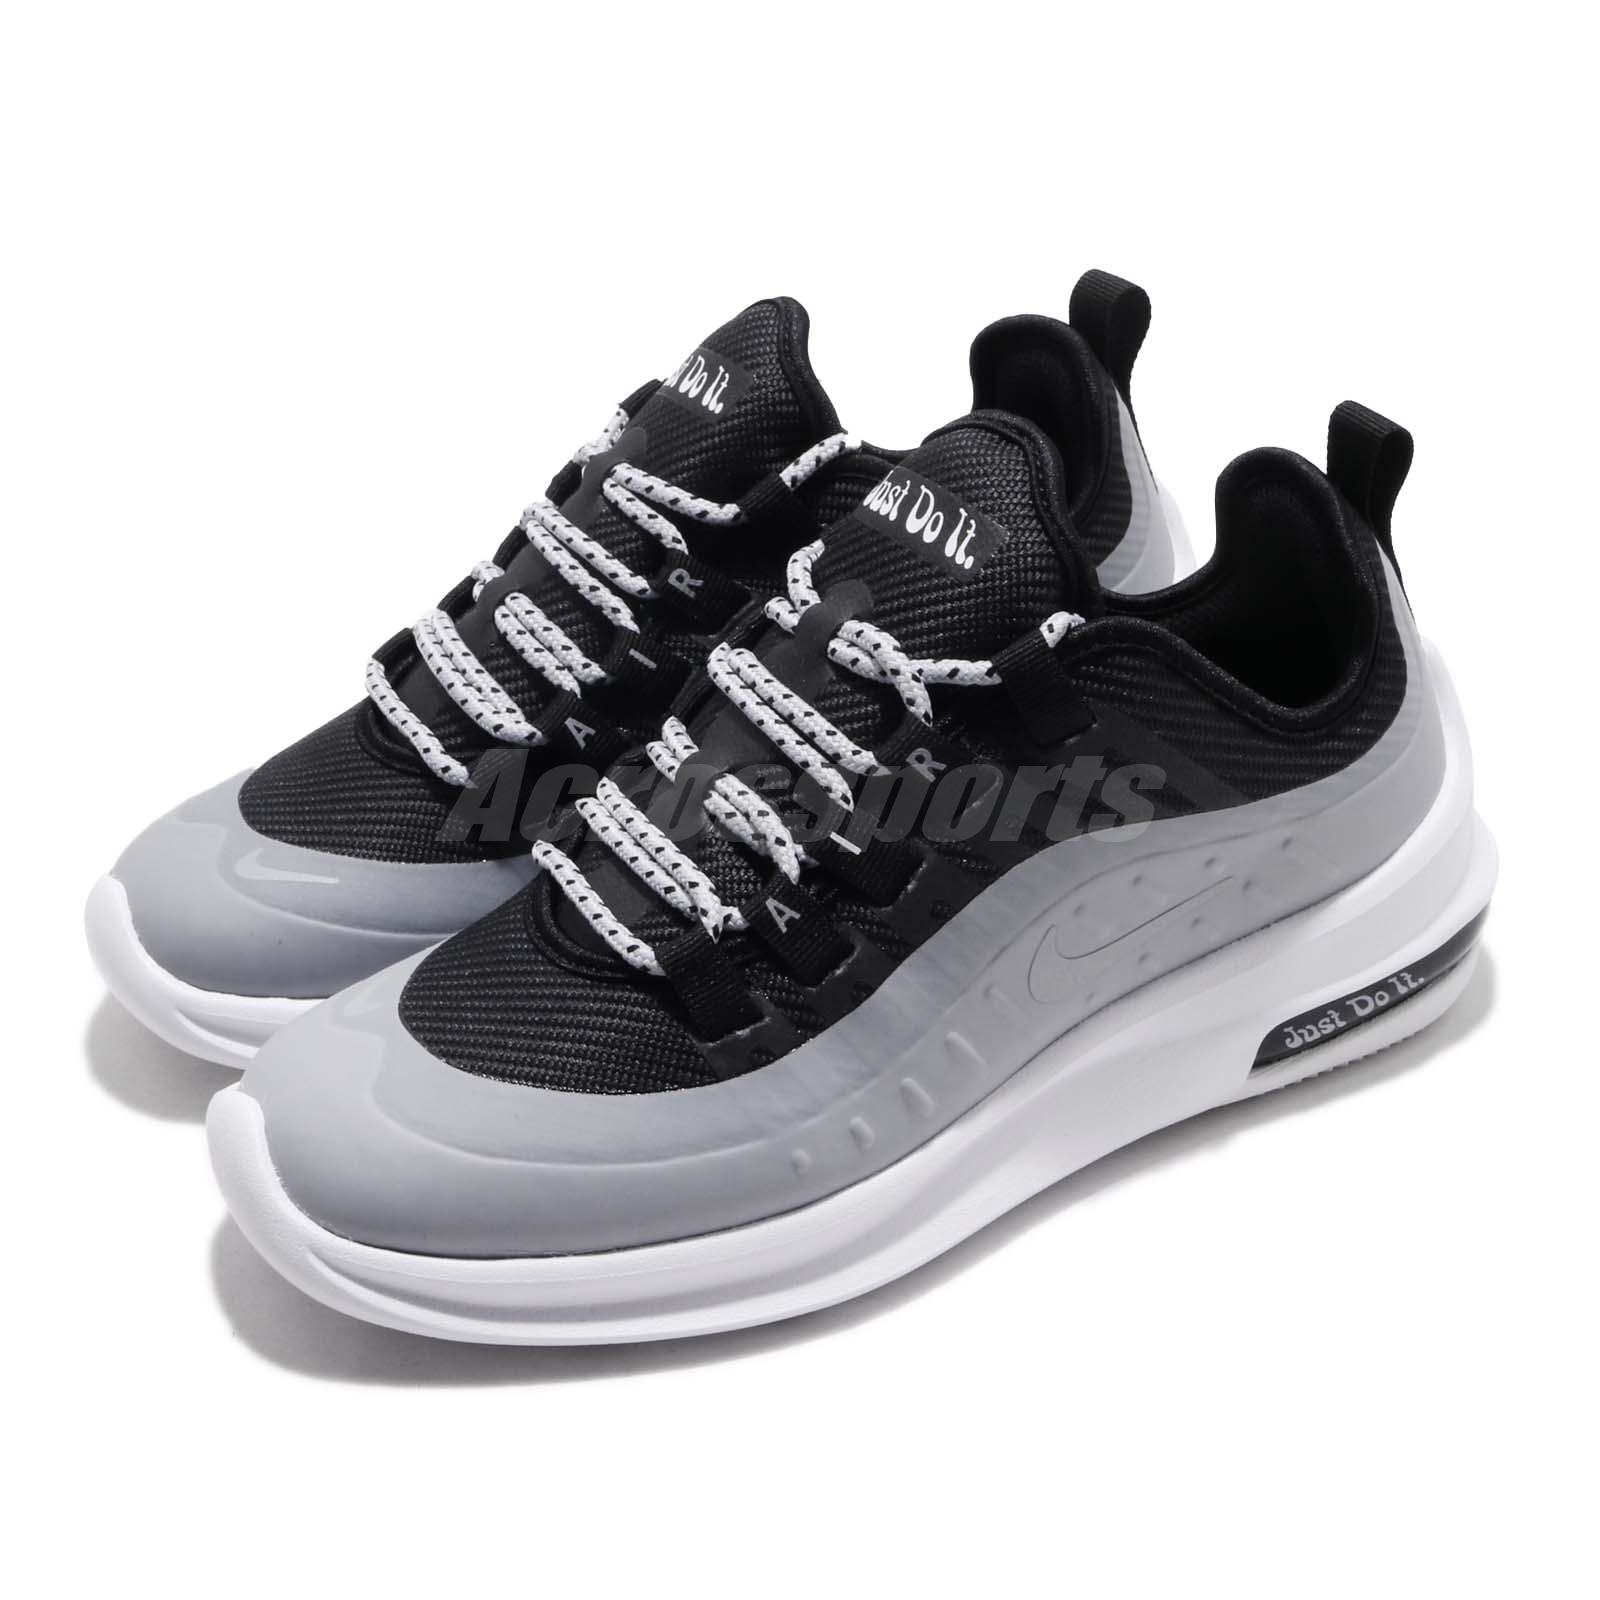 Details about Nike Wmns Air Max Axis SE Black Grey White Women Running Shoe  Sneaker AA2167-001 1df84605e